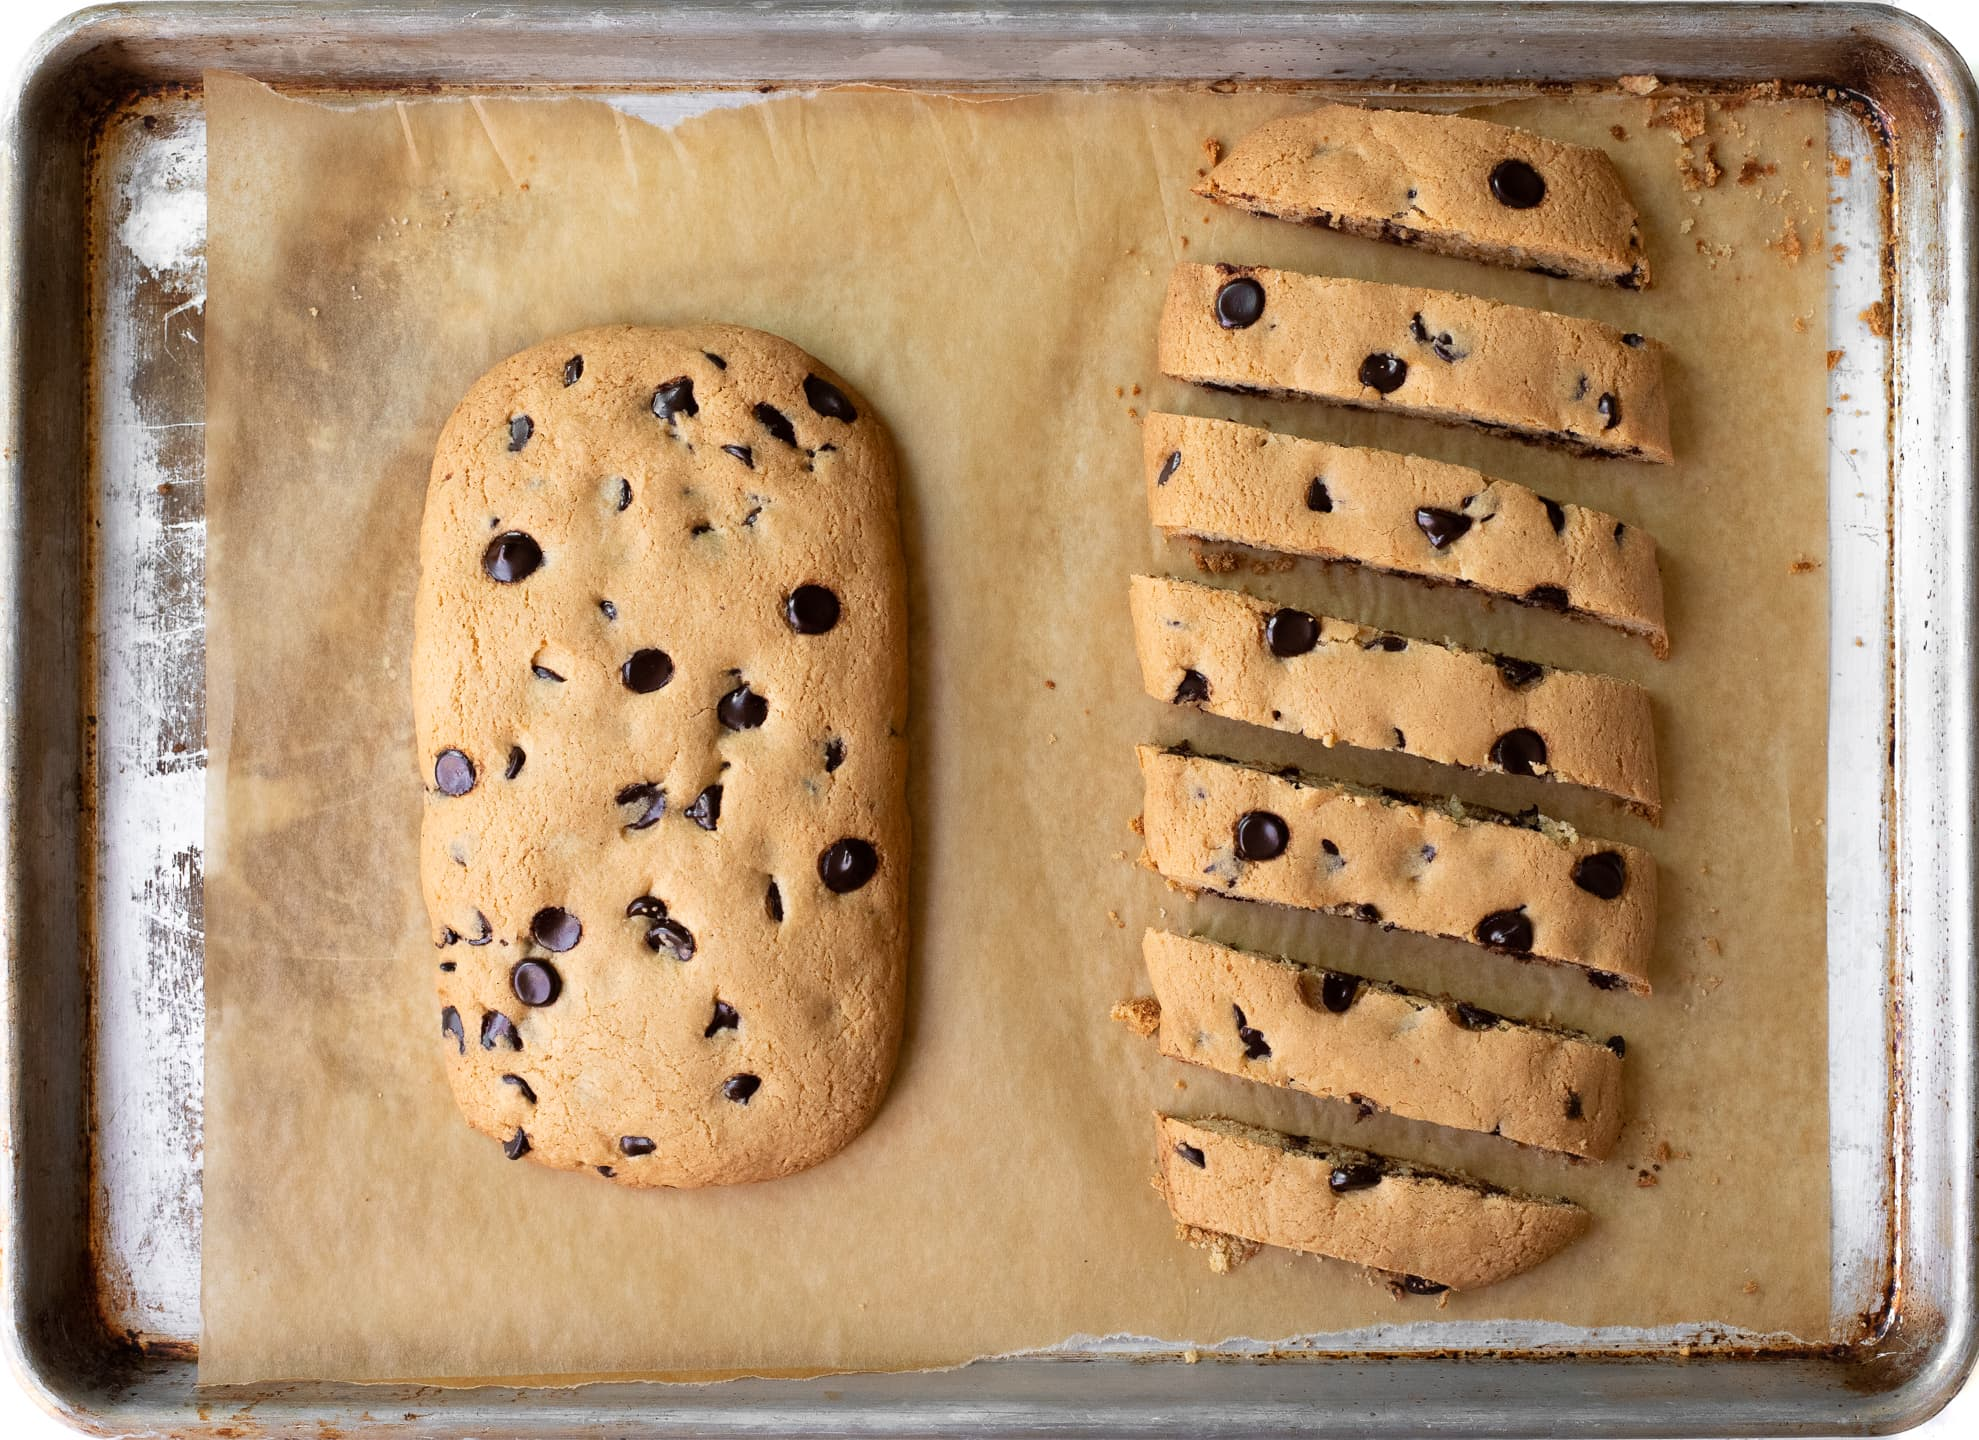 Visual depiction of biscotti dough in the process of being baked and sliced.